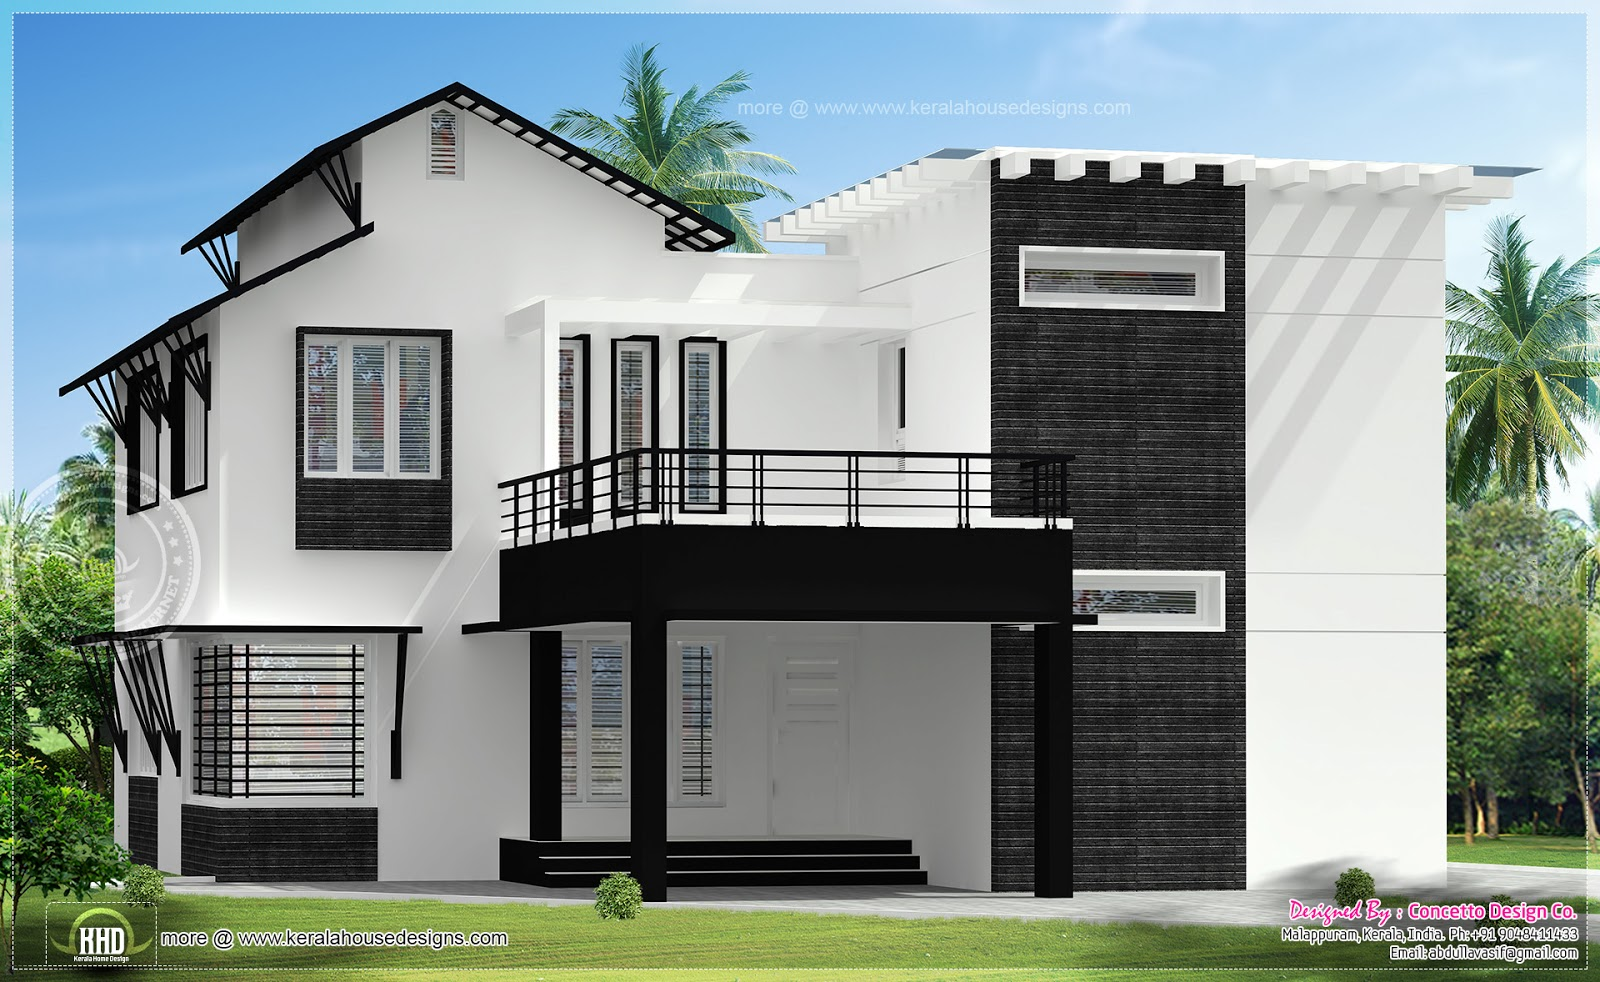 5 different house exteriors by concetto design kerala for Window design for house in india